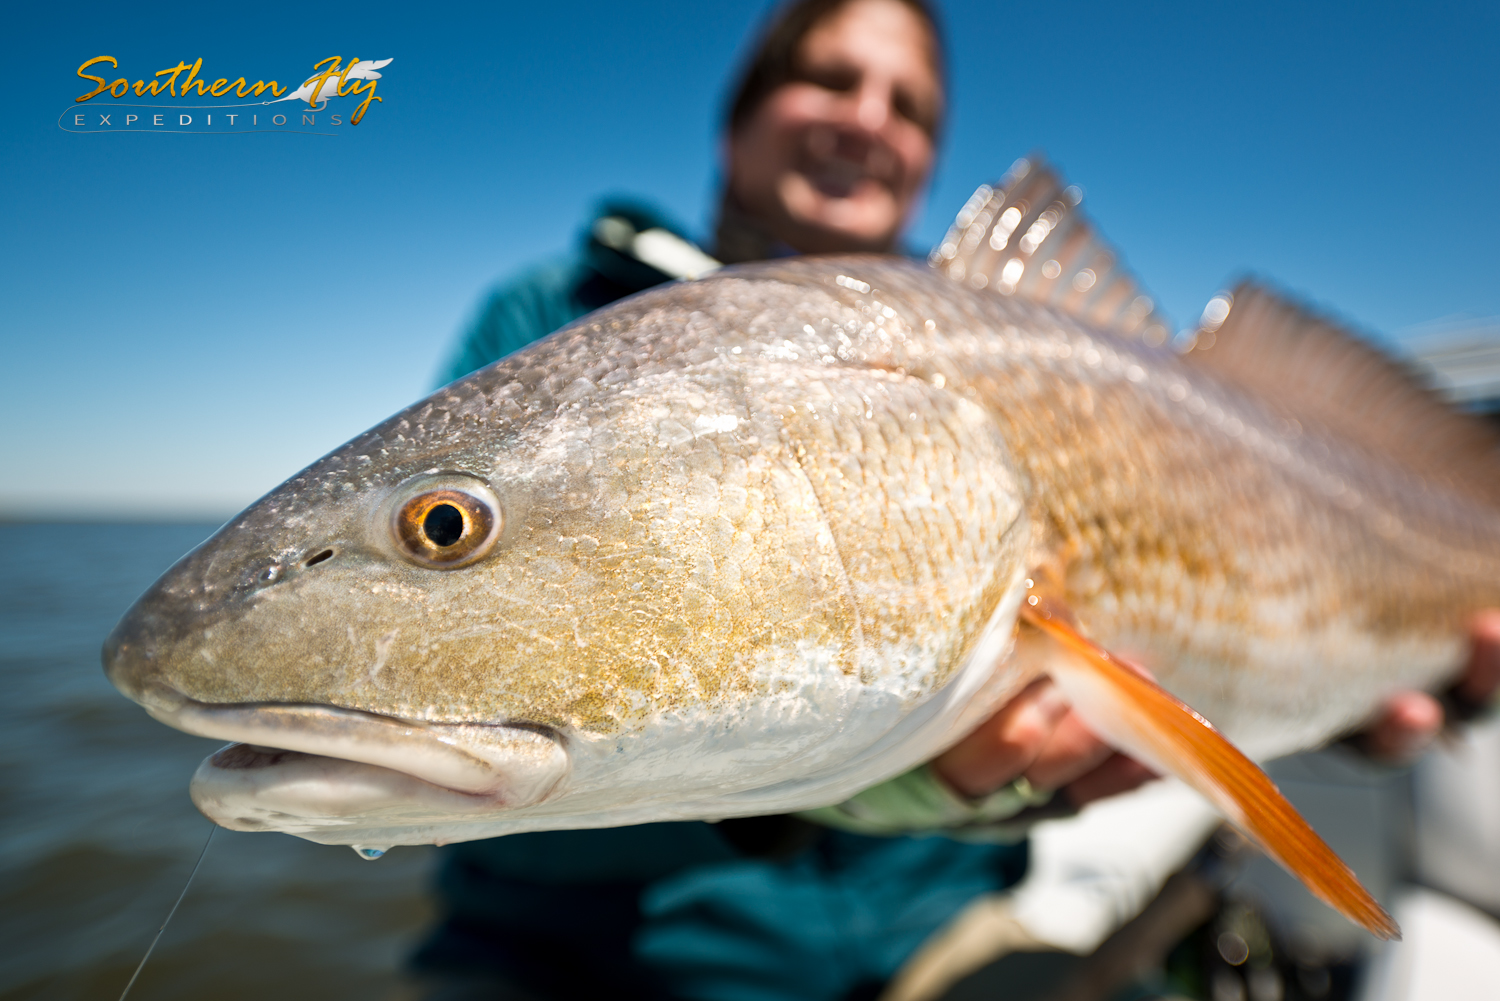 Casting for Redfish hooks a Good Sized Redfish Southern Fly Expeditions New Orleans Louisiana Fly Fishing